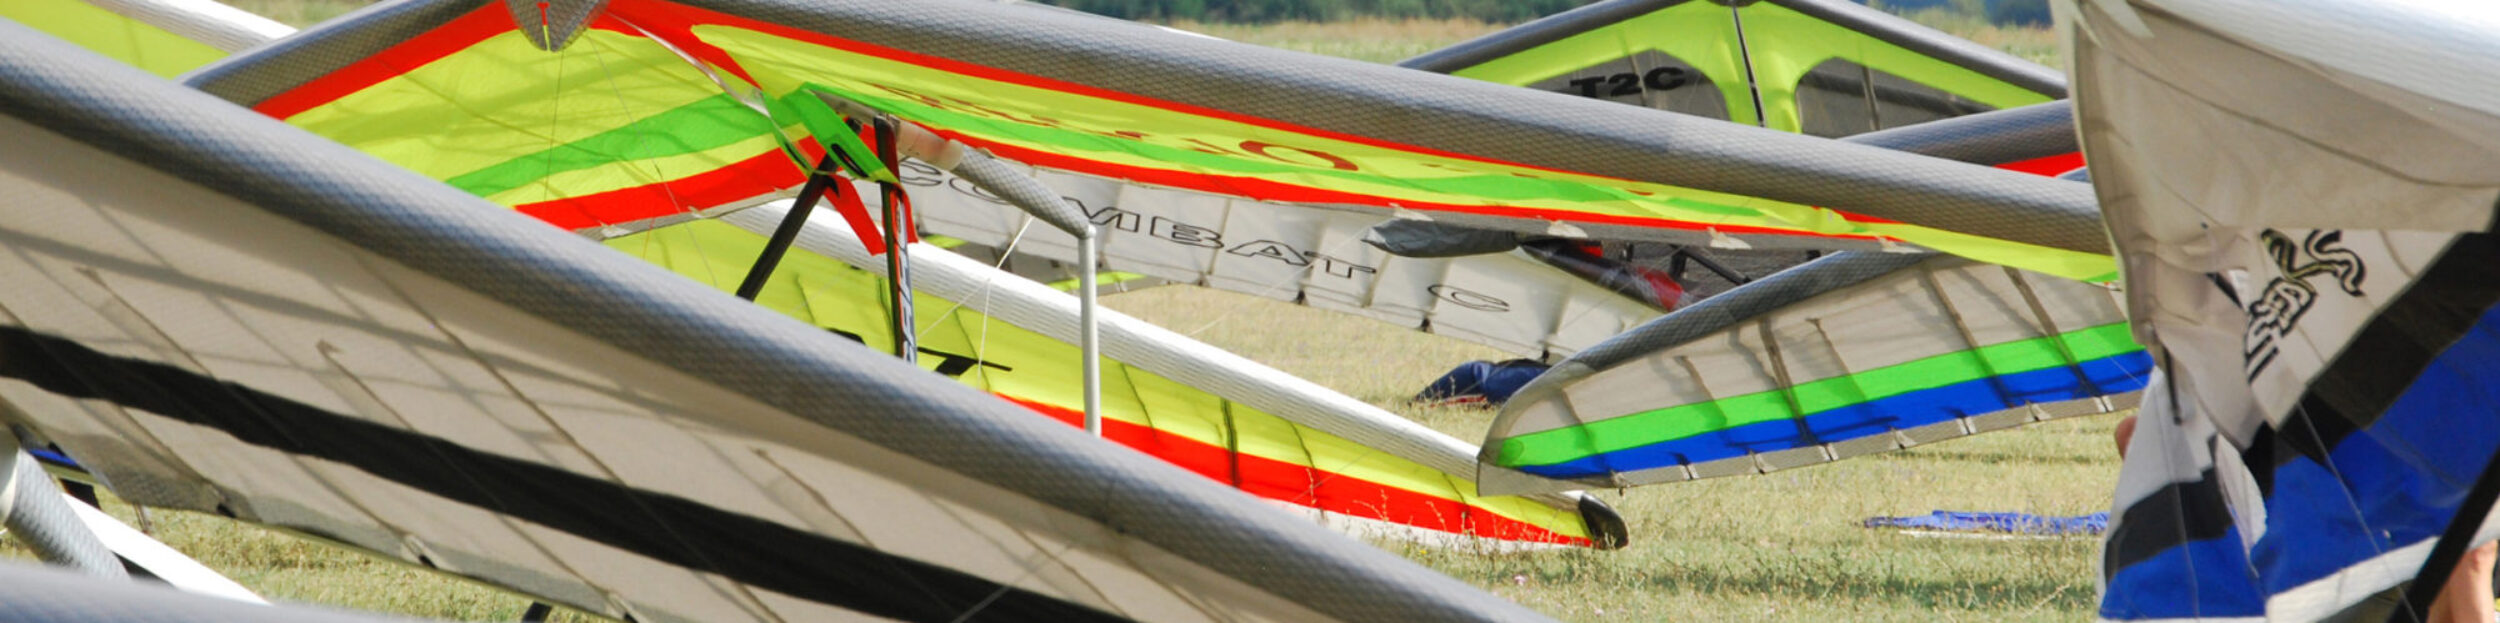 2021 Hang Gliding World Championship